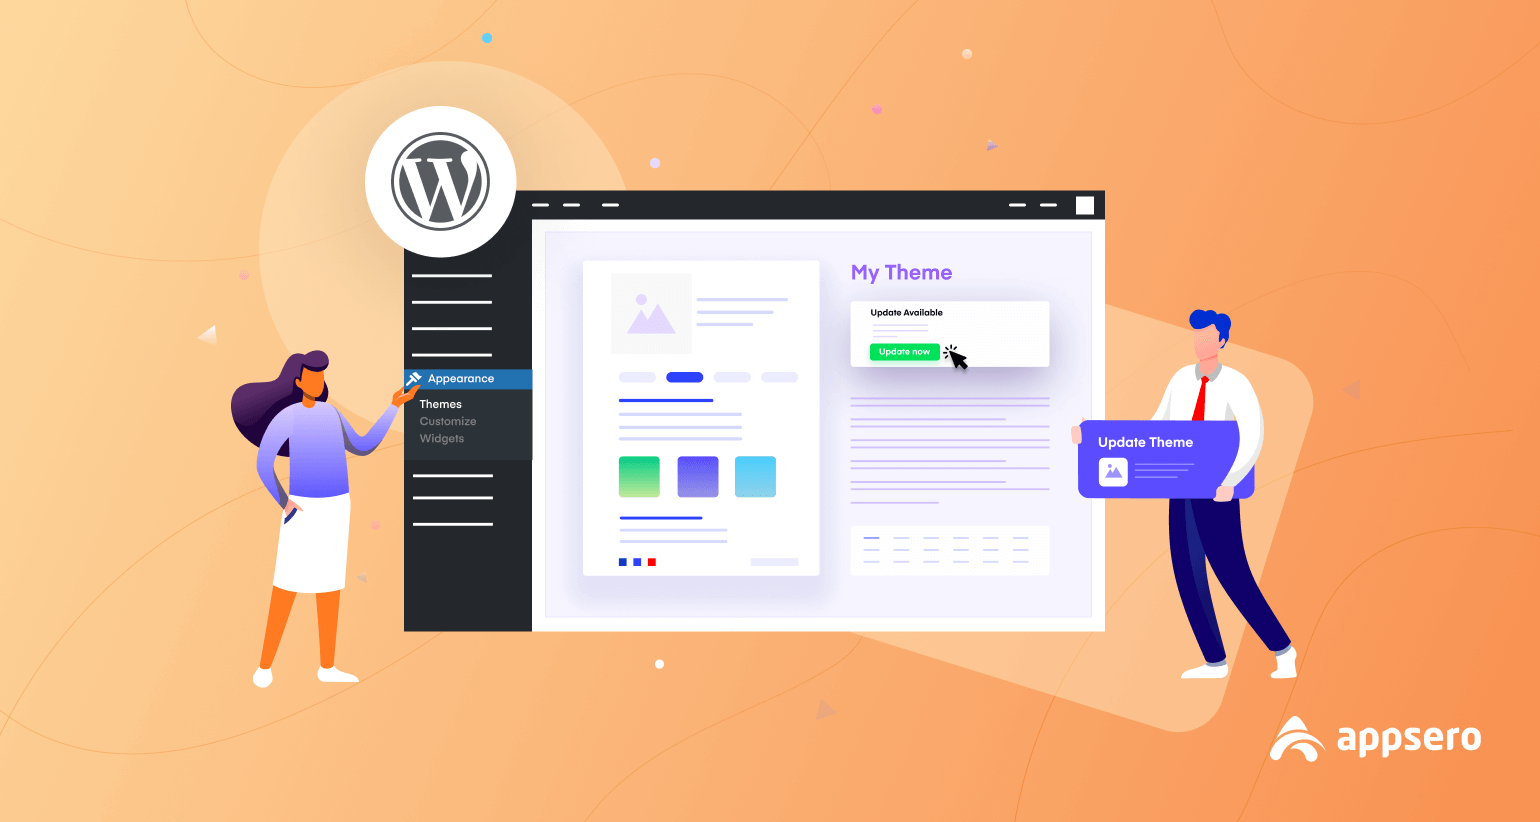 How to Update Your Theme in WordPress: The Easy Way